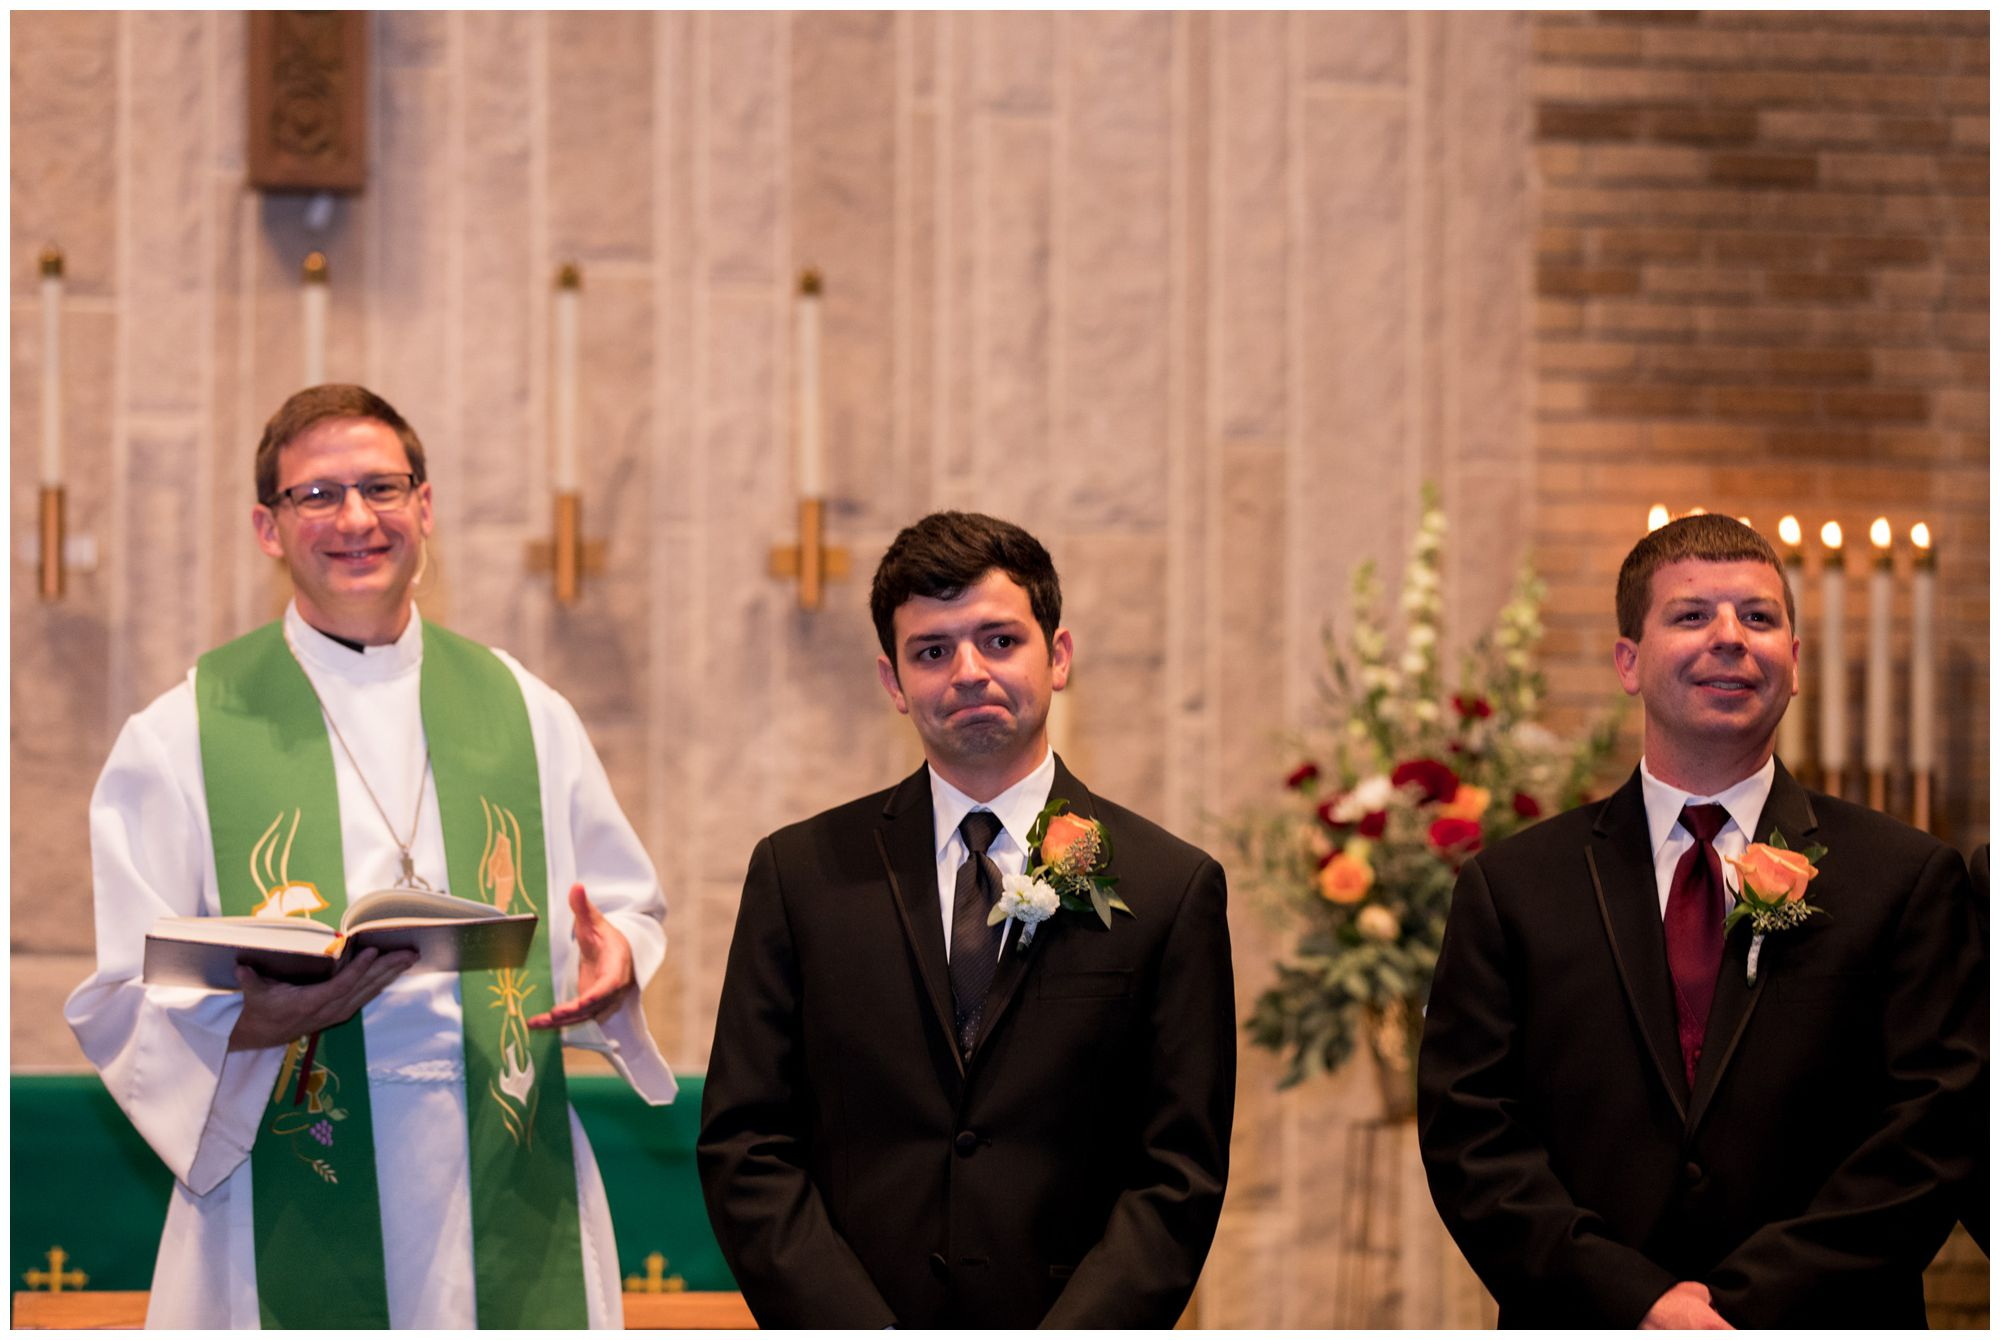 groom turns to see bride walking down aisle during Zion Lutheran Church wedding ceremony